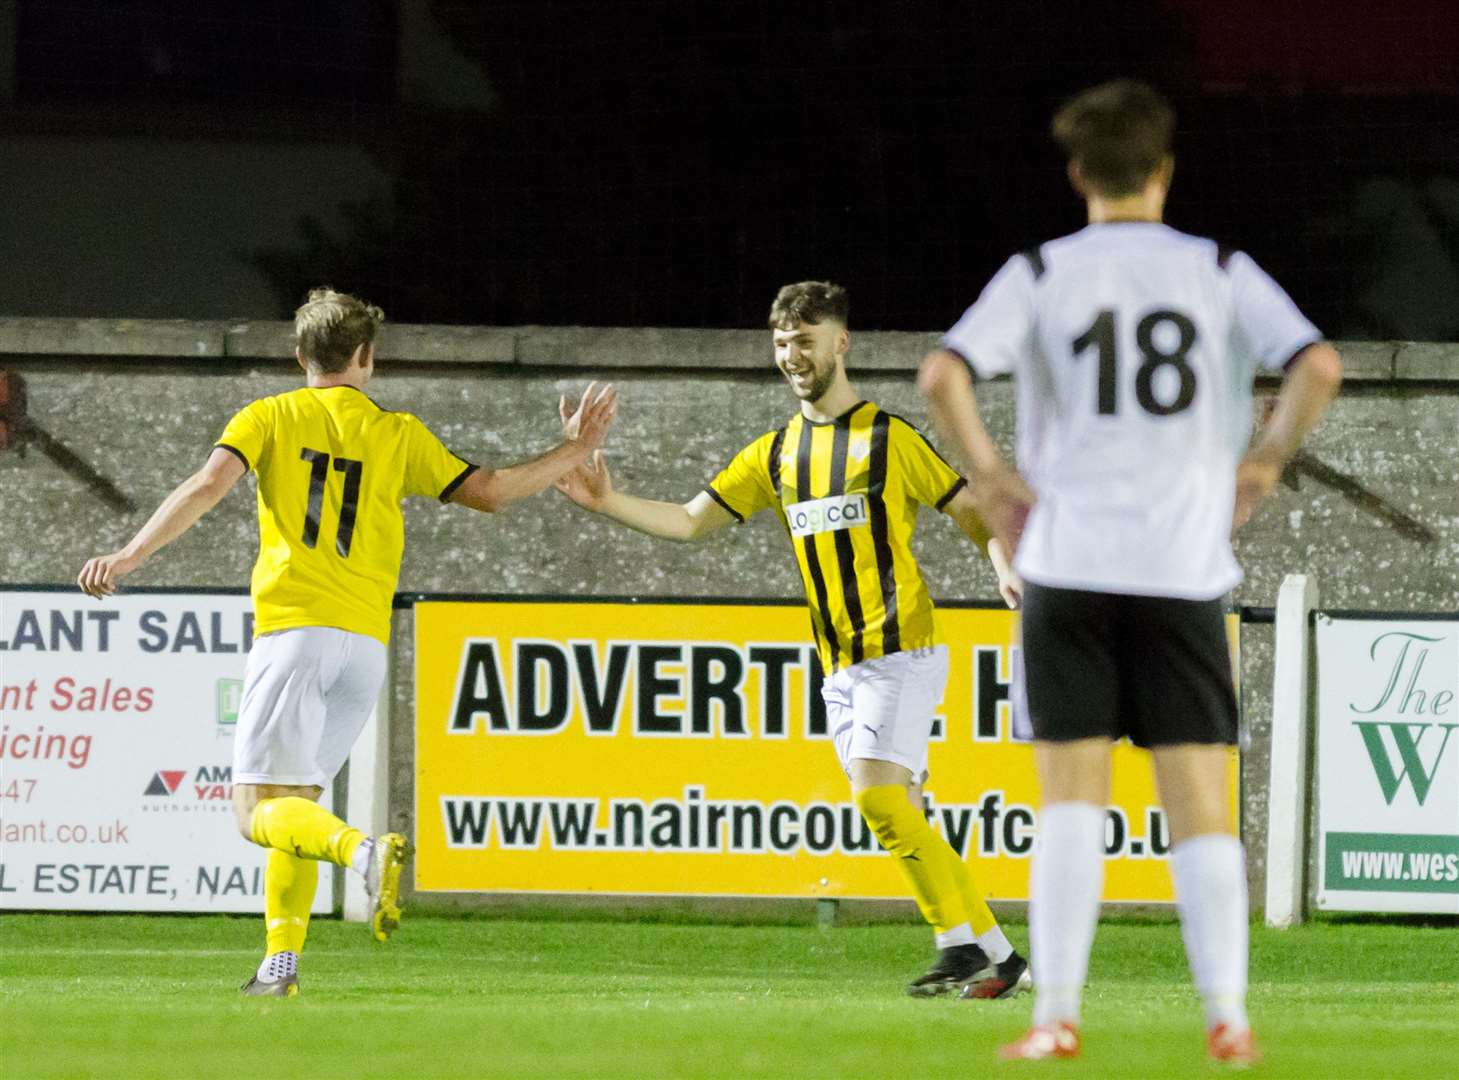 Liam Shewan scored in Nairn's 2-1 win over Clachnacuddin. Picture: Donald Cameron